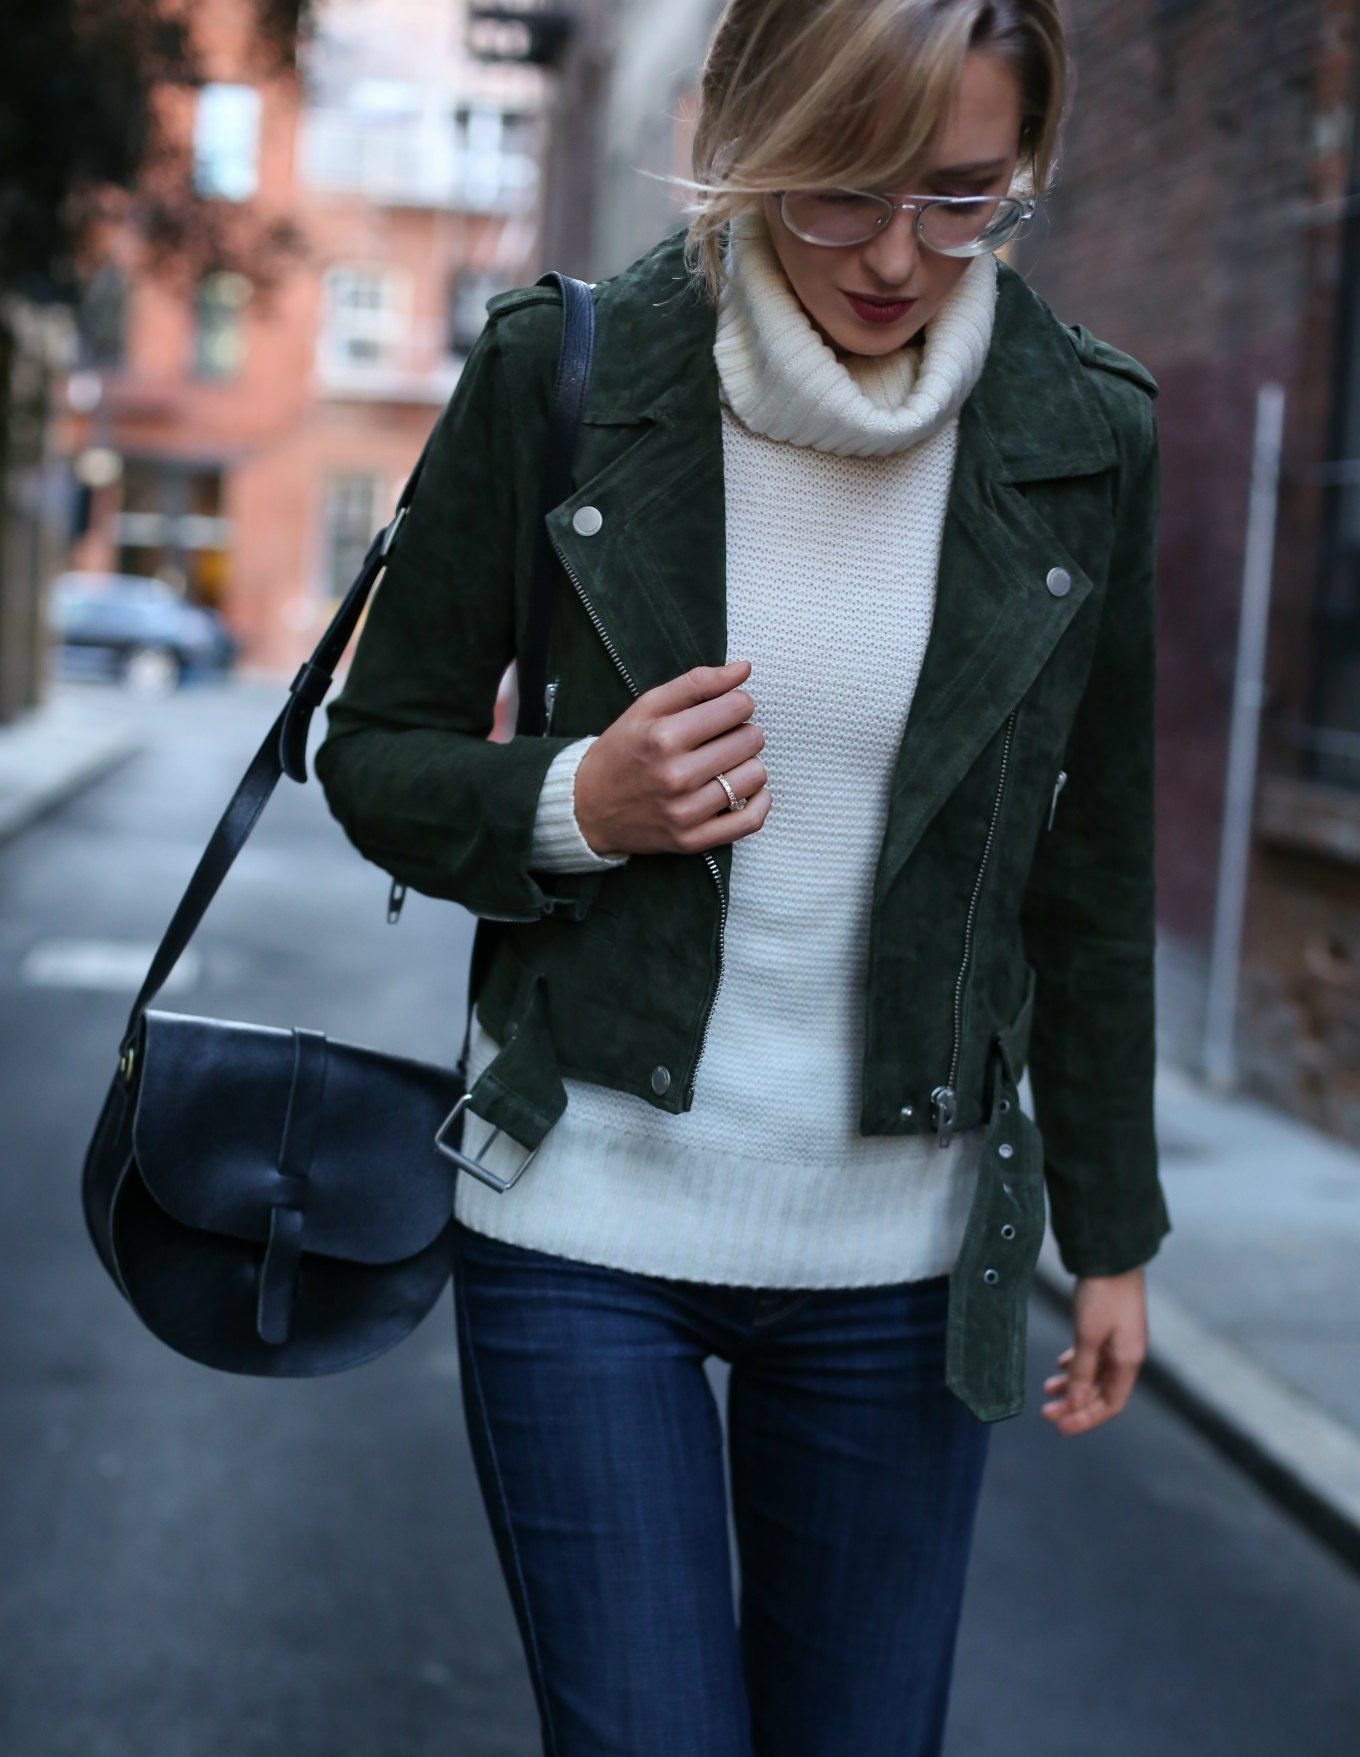 blank-nyc-suede-moto-jacket-green-flare-leg-jeans-ivory-cowl-neck-chunky-knit-sweater-silver-aviator-glasses6